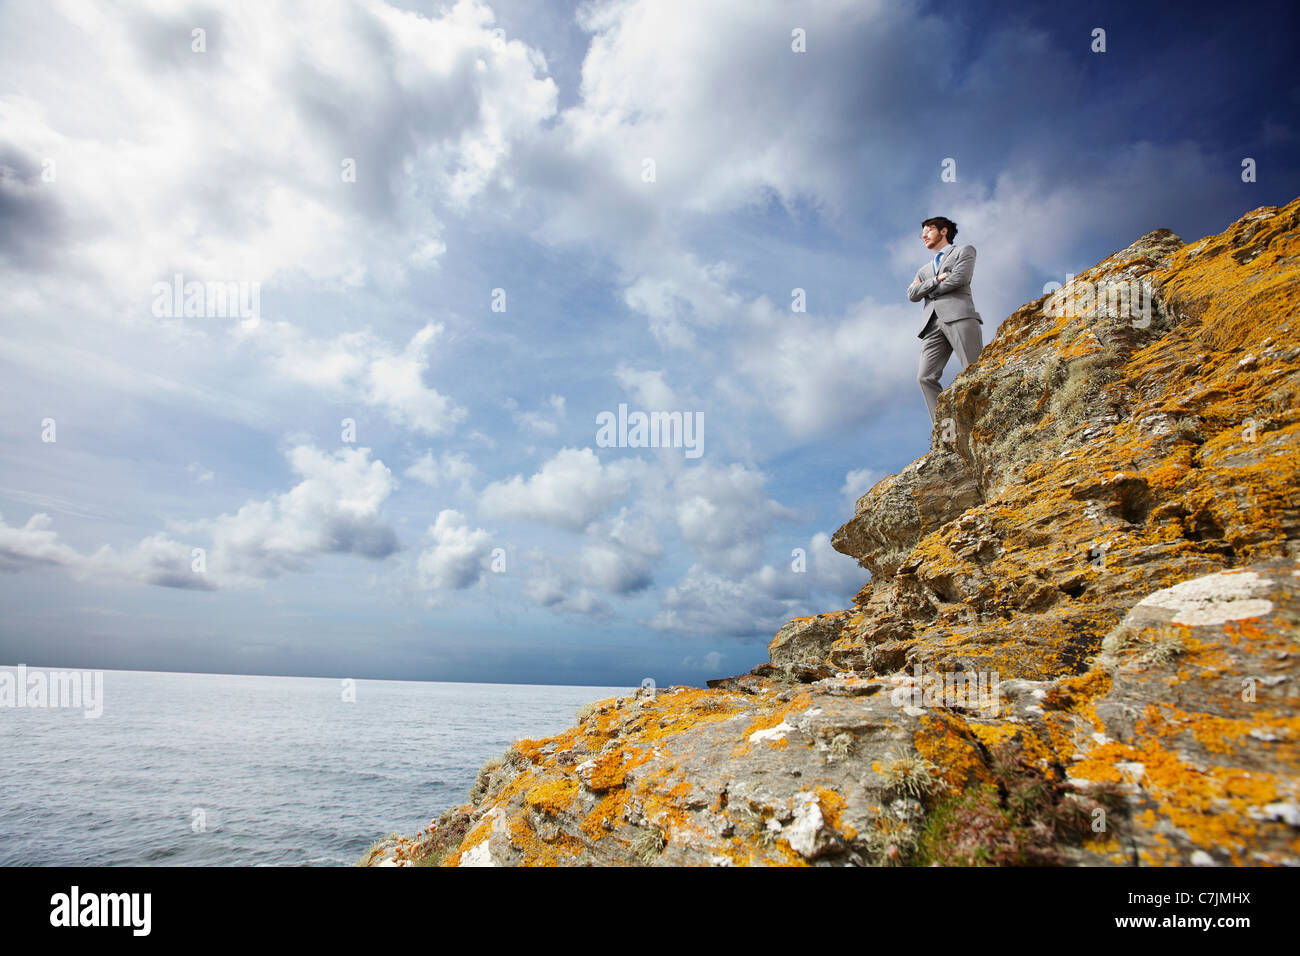 Businessman standing on cliff edge - Stock Image